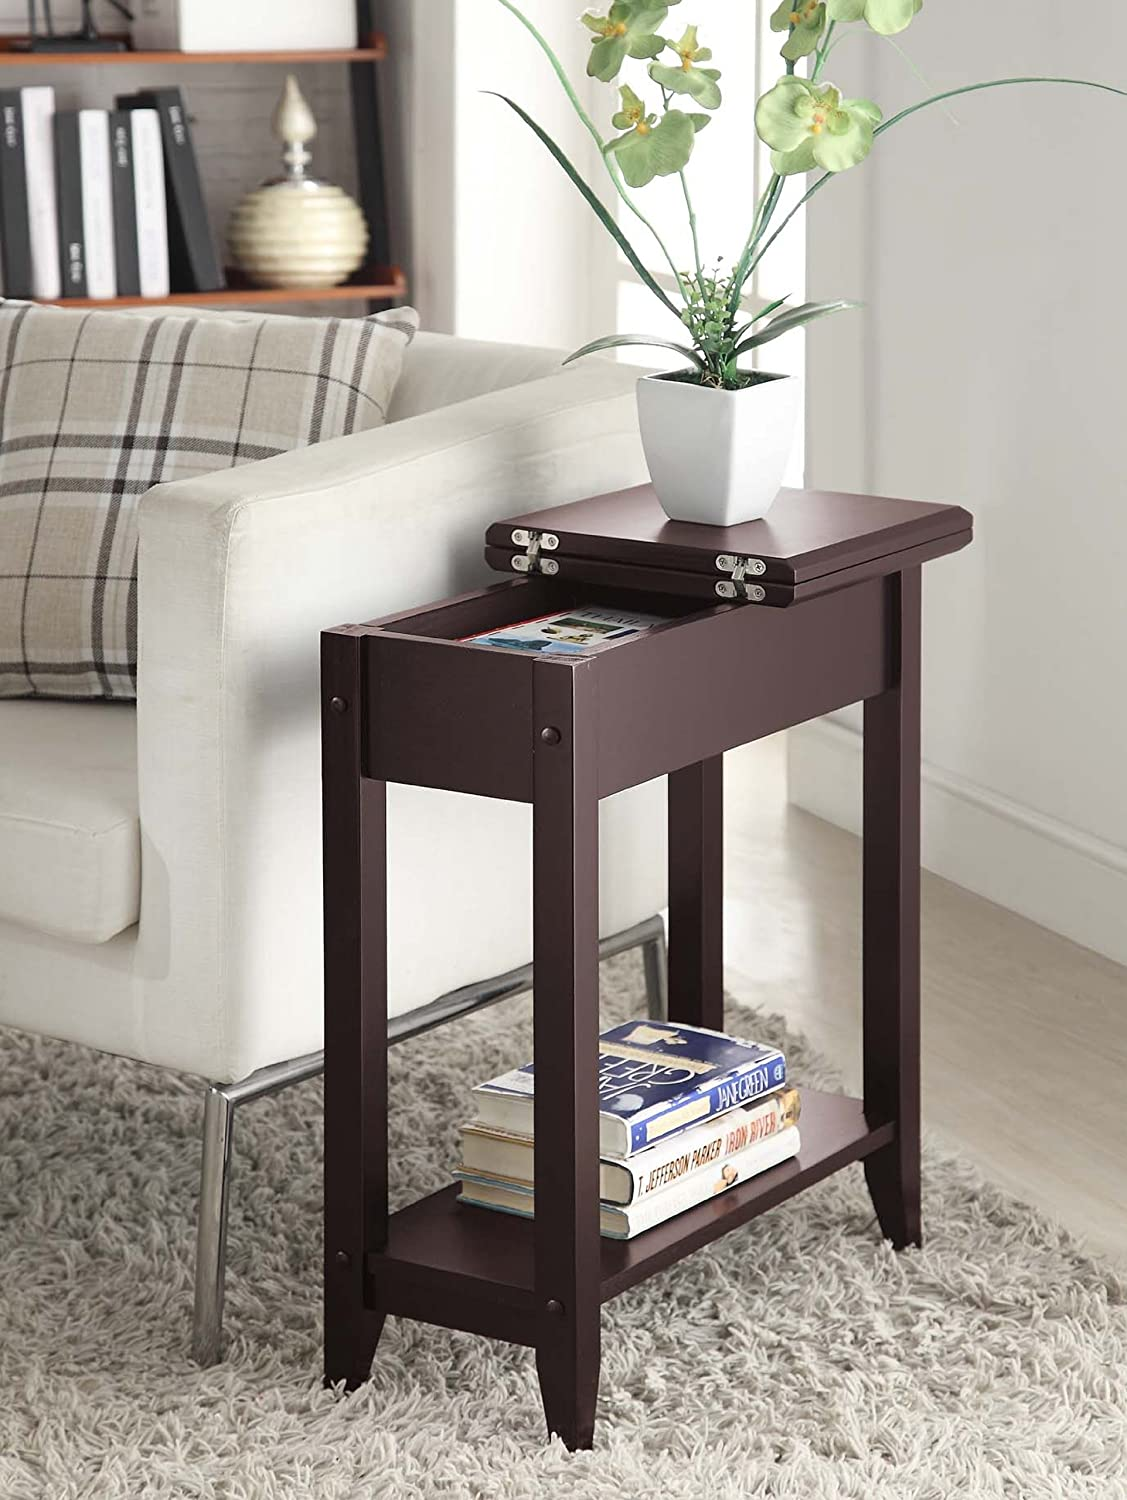 Small end table side accent sofa chair narrow living room - Narrow side tables for living room ...